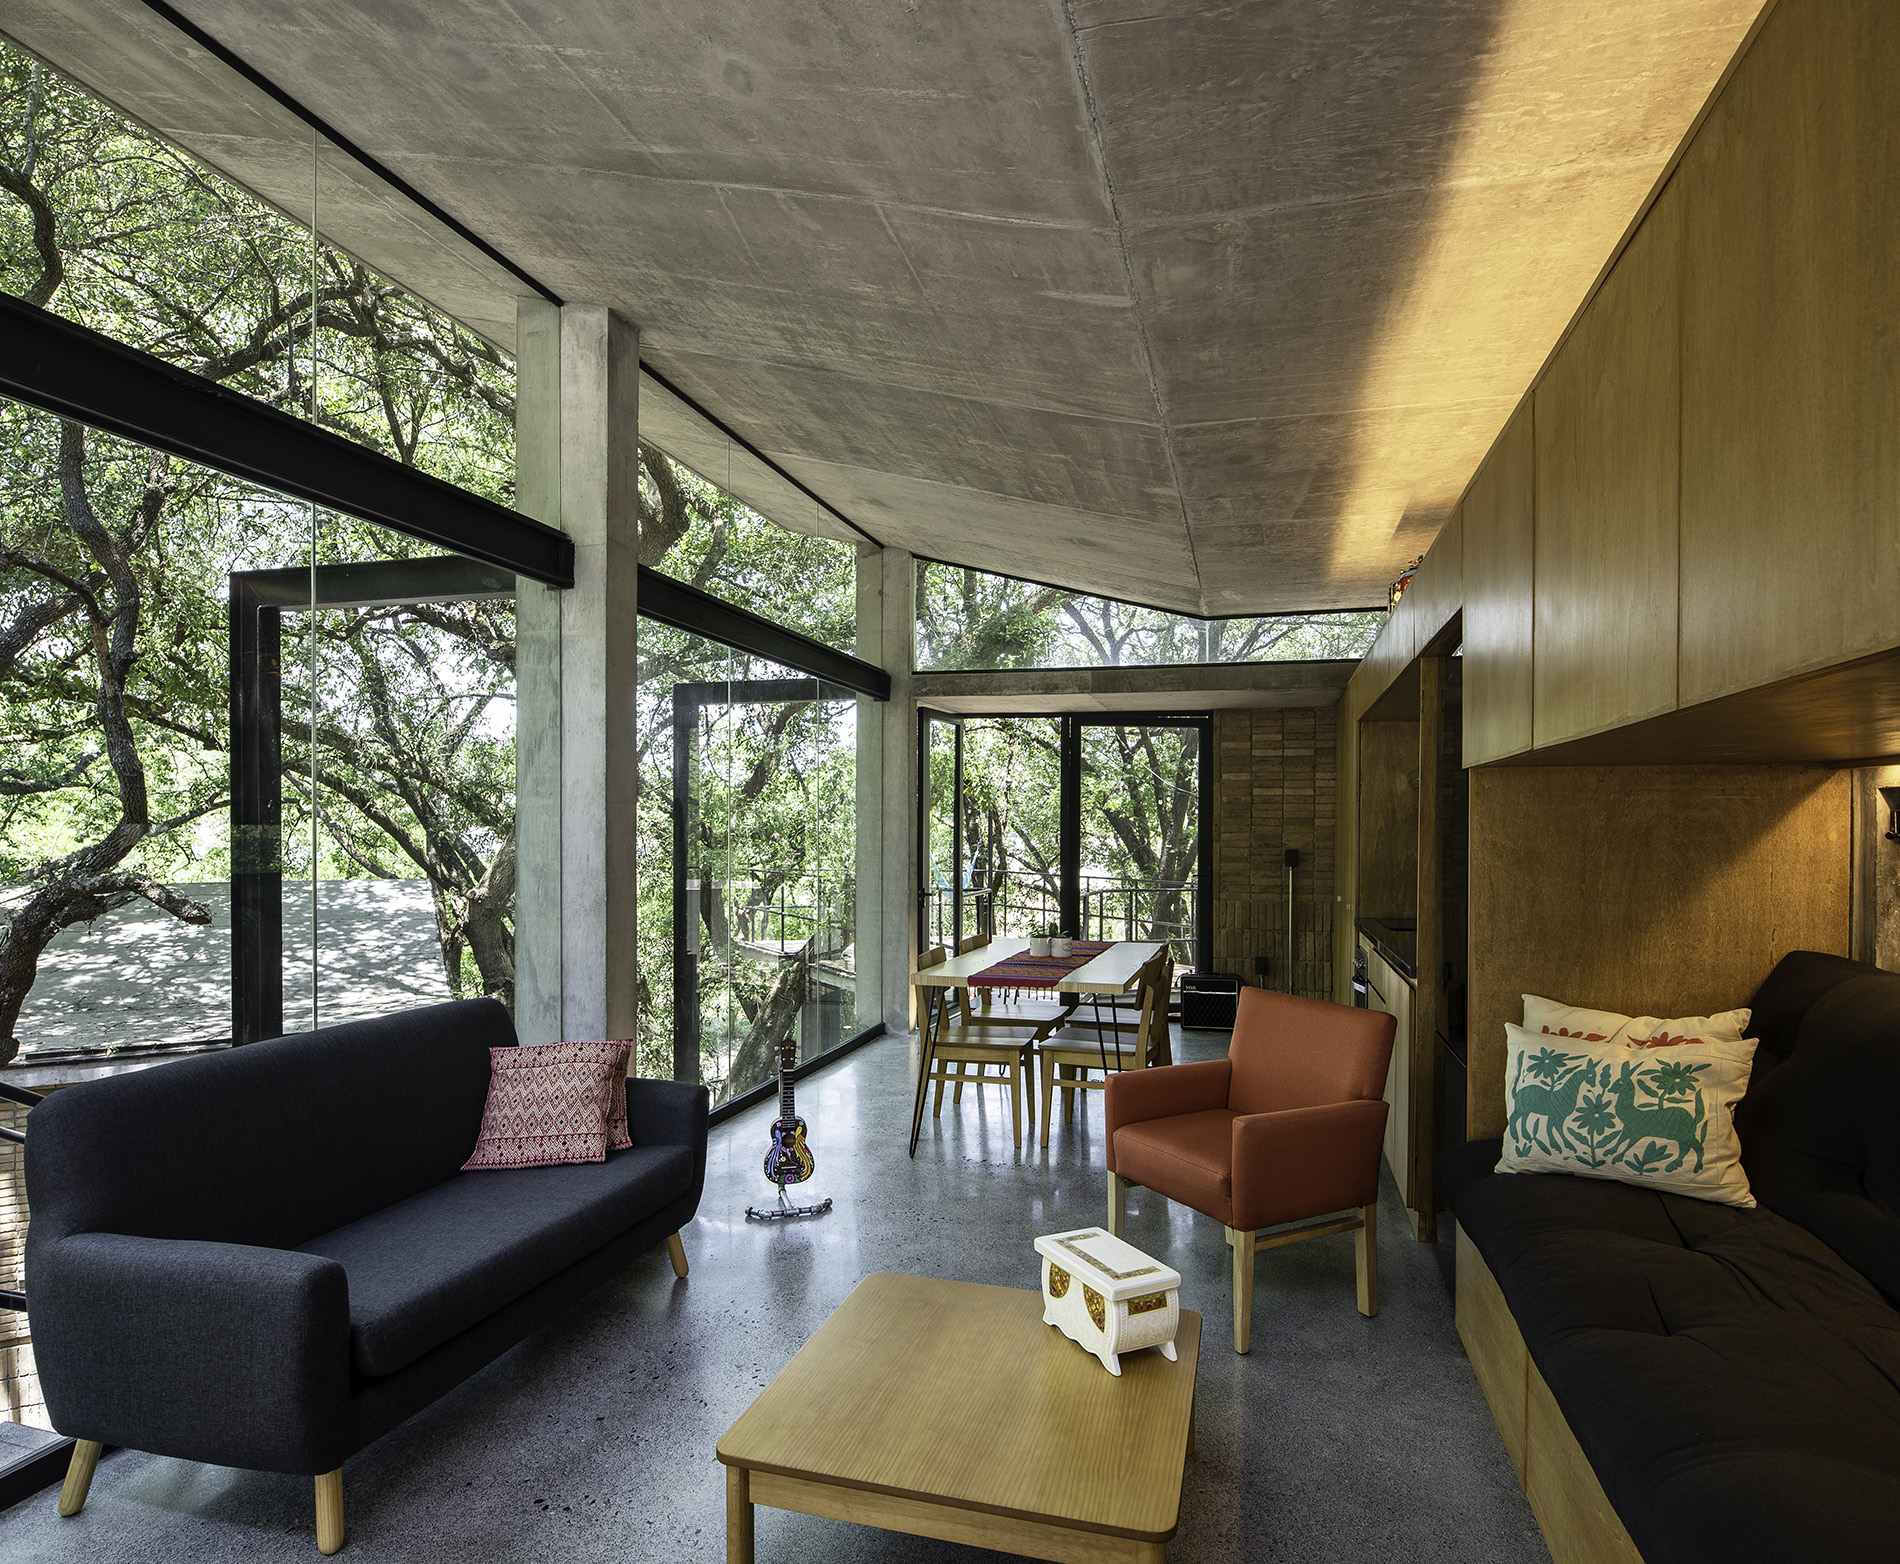 Modern couch and arm chairs in a treehouse-style living room with large windows.